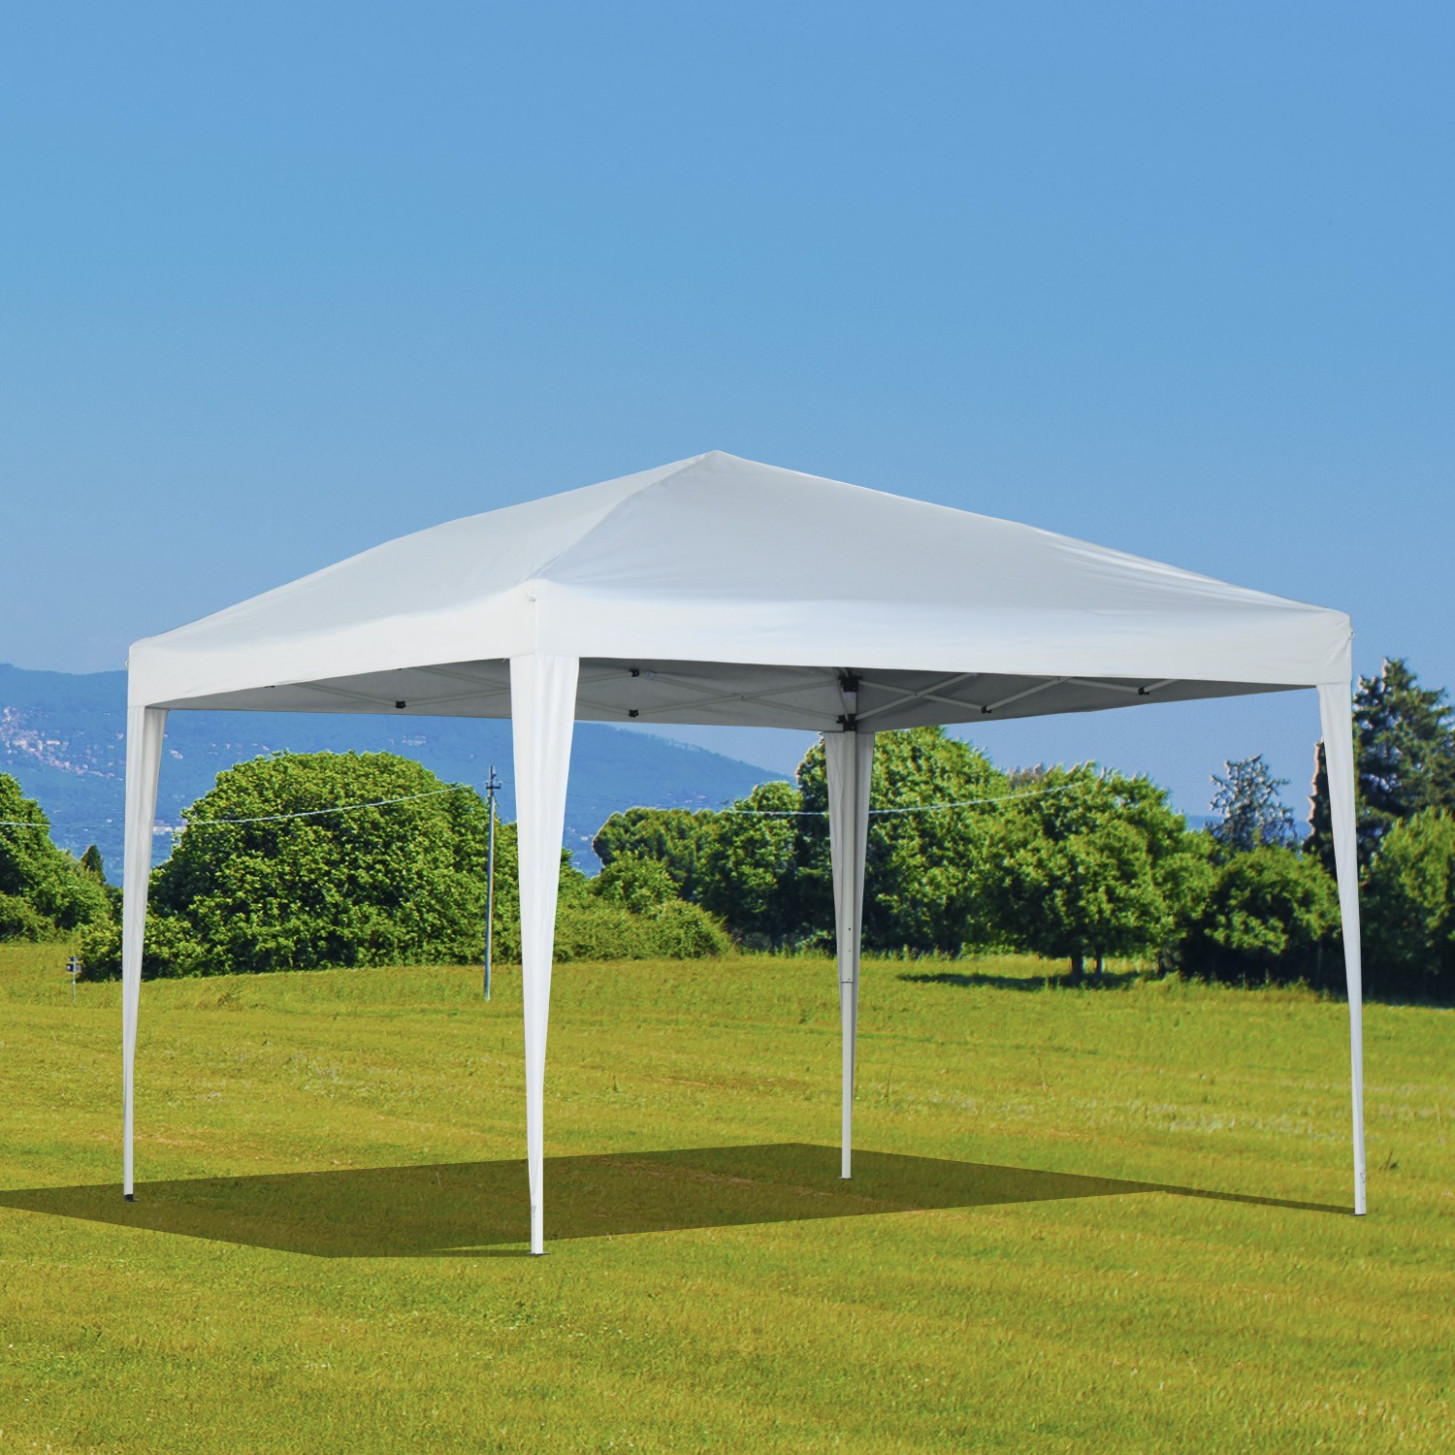 Outsunny 10'x10' Easy Folding Pop Up Tent Party Wedding Tent Gazebo Canopy Without Walls (White)Aosom